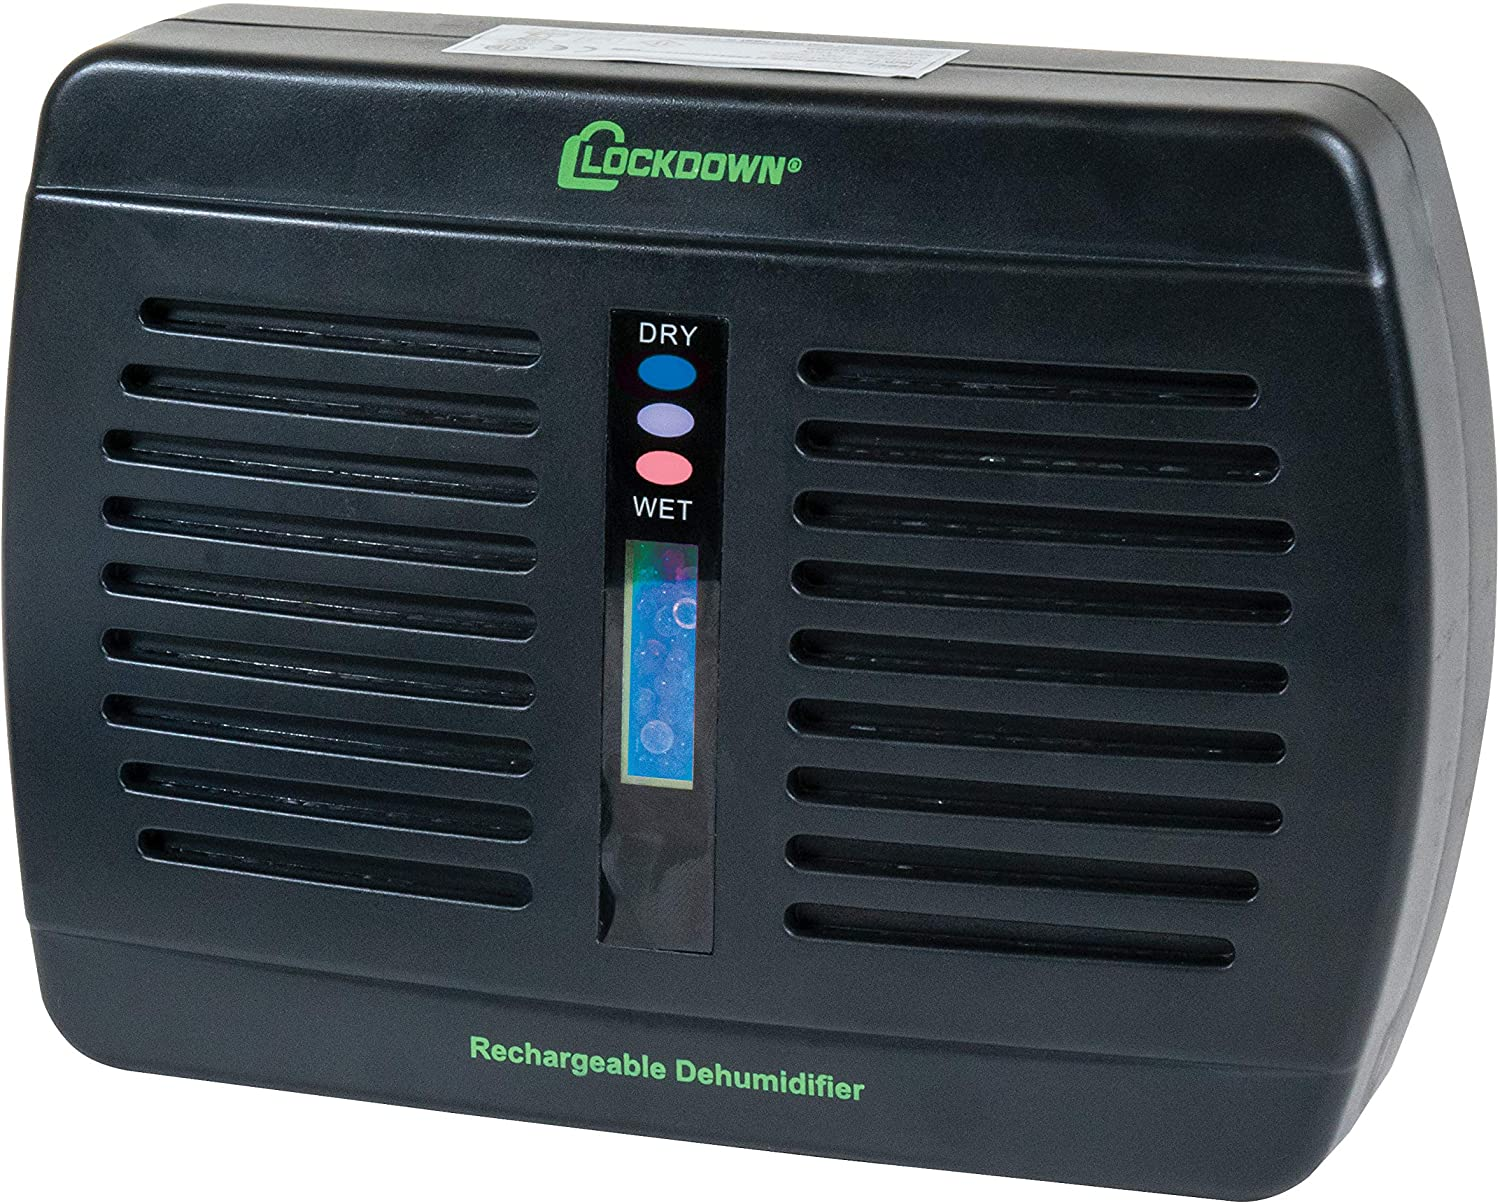 Lockdown Free shipping / New Rechargeable Industry No. 1 Renewable Dehumidifier Cordl Compact with